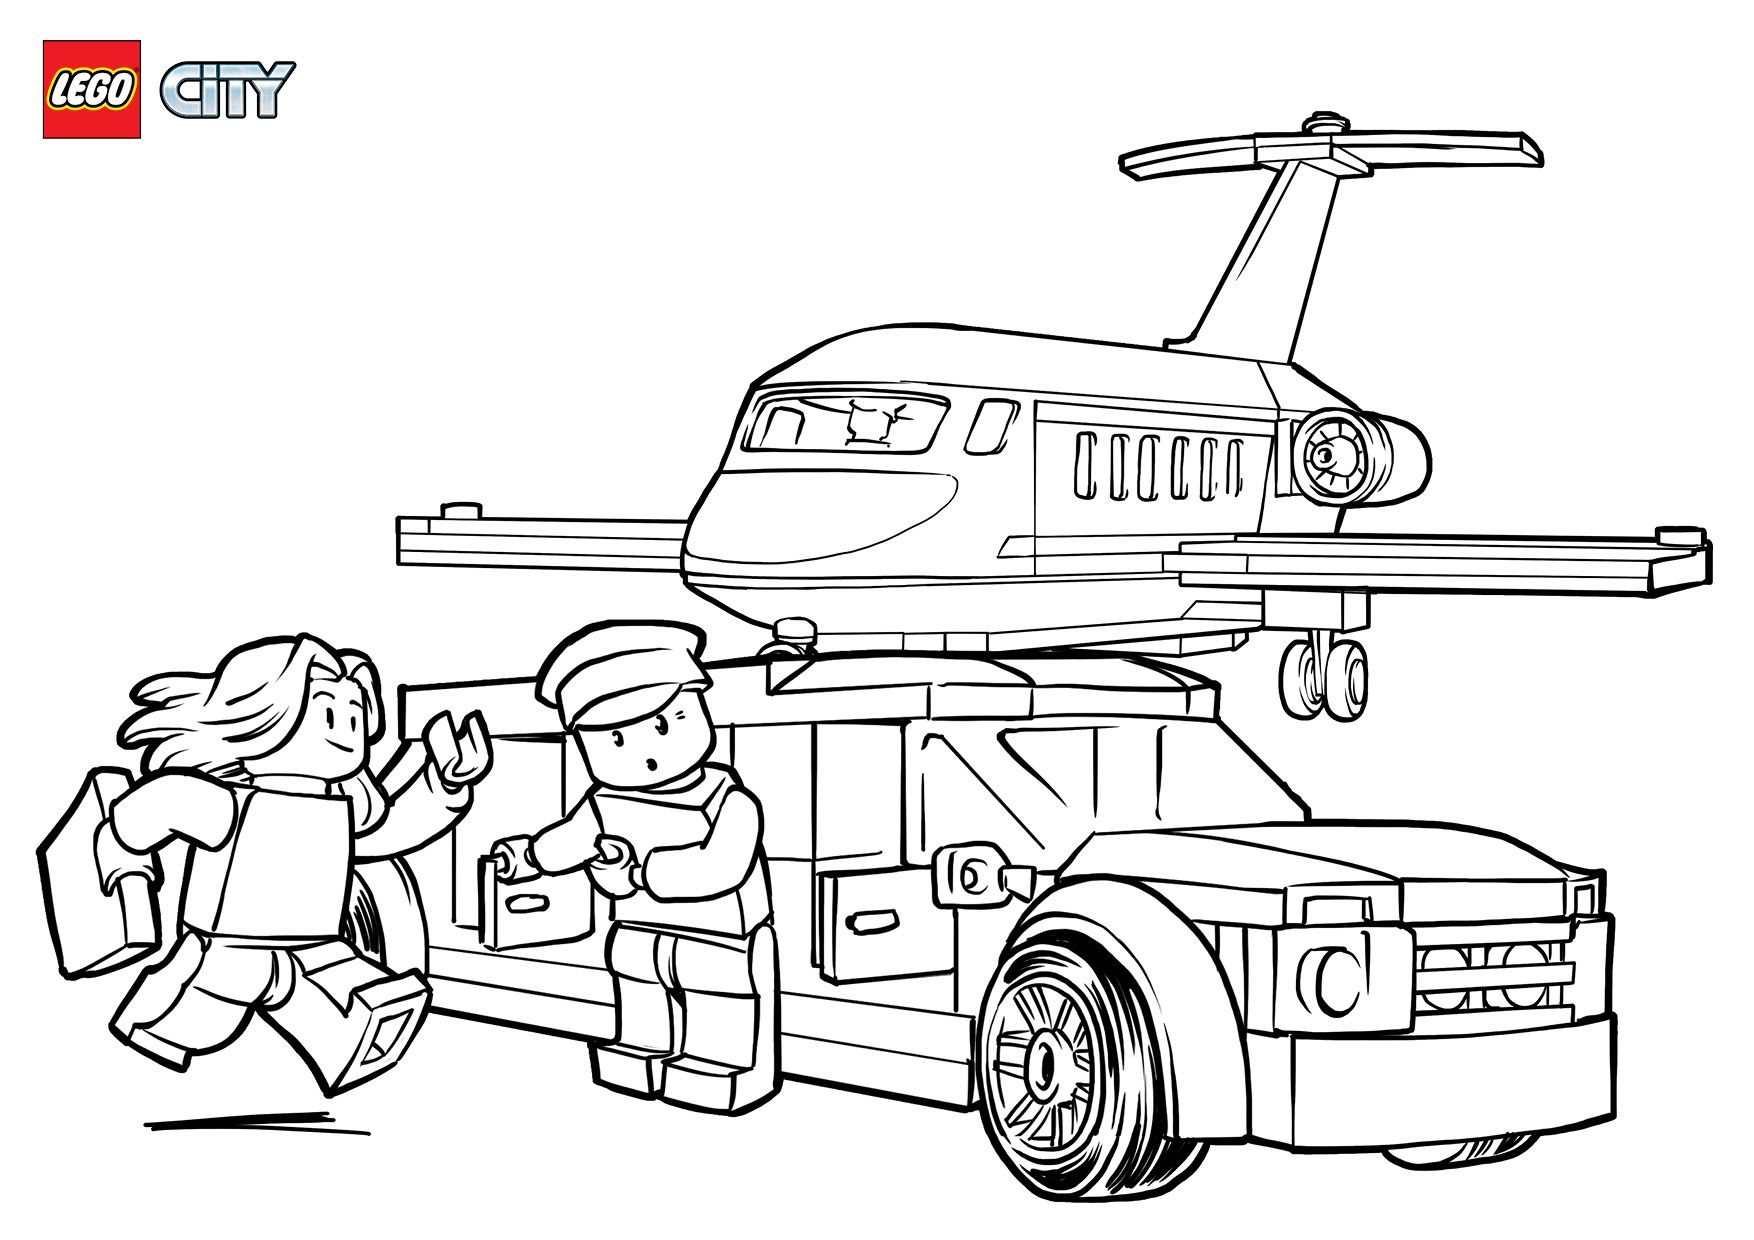 Airport Vip Service Lego Coloring Pages Lego Coloring Lego Movie Coloring Pages